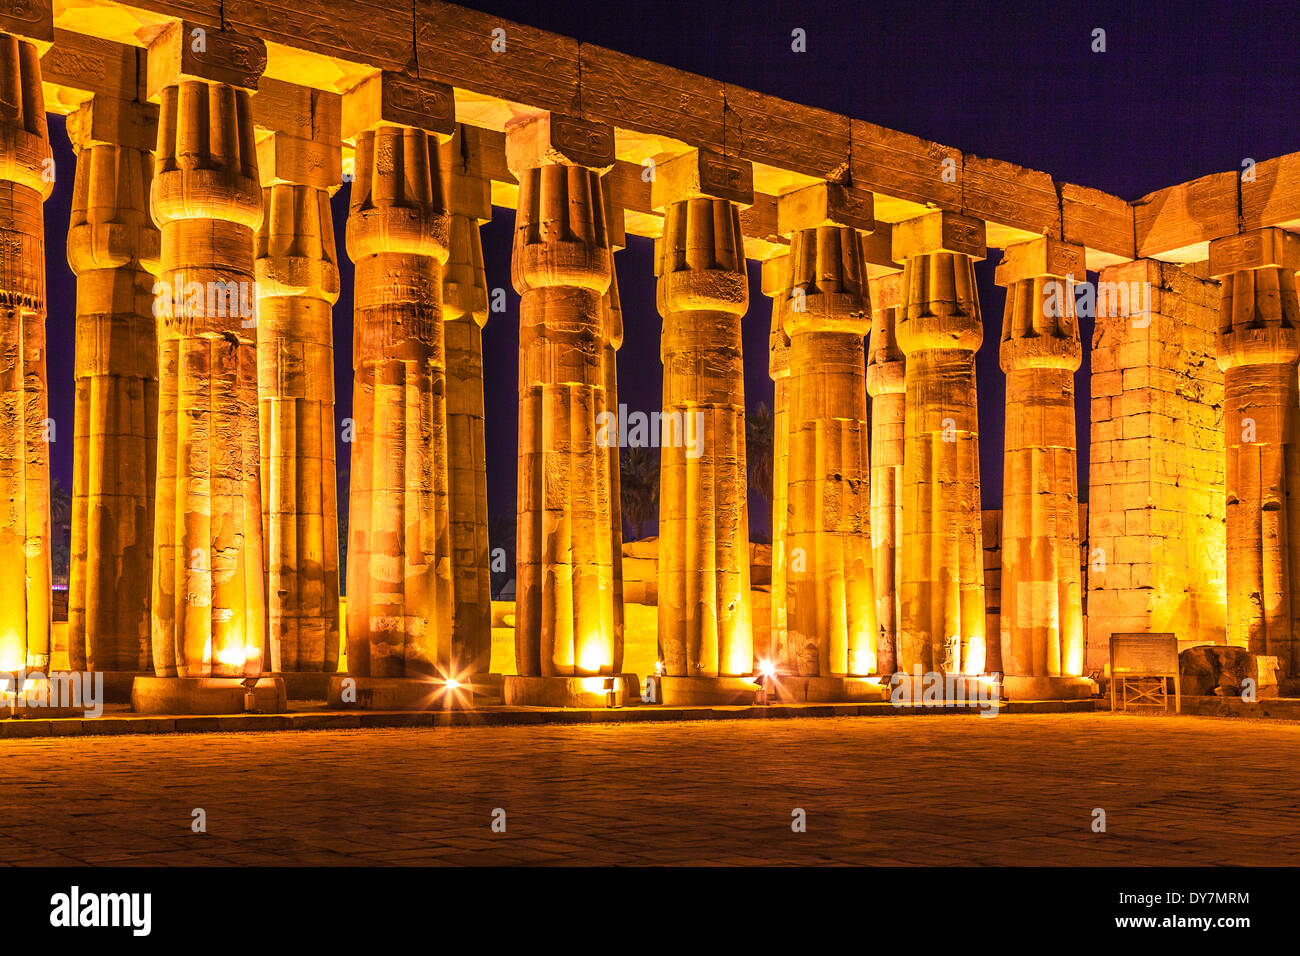 The great hypostyle hall of Amenhotep III at Luxor Temple. - Stock Image